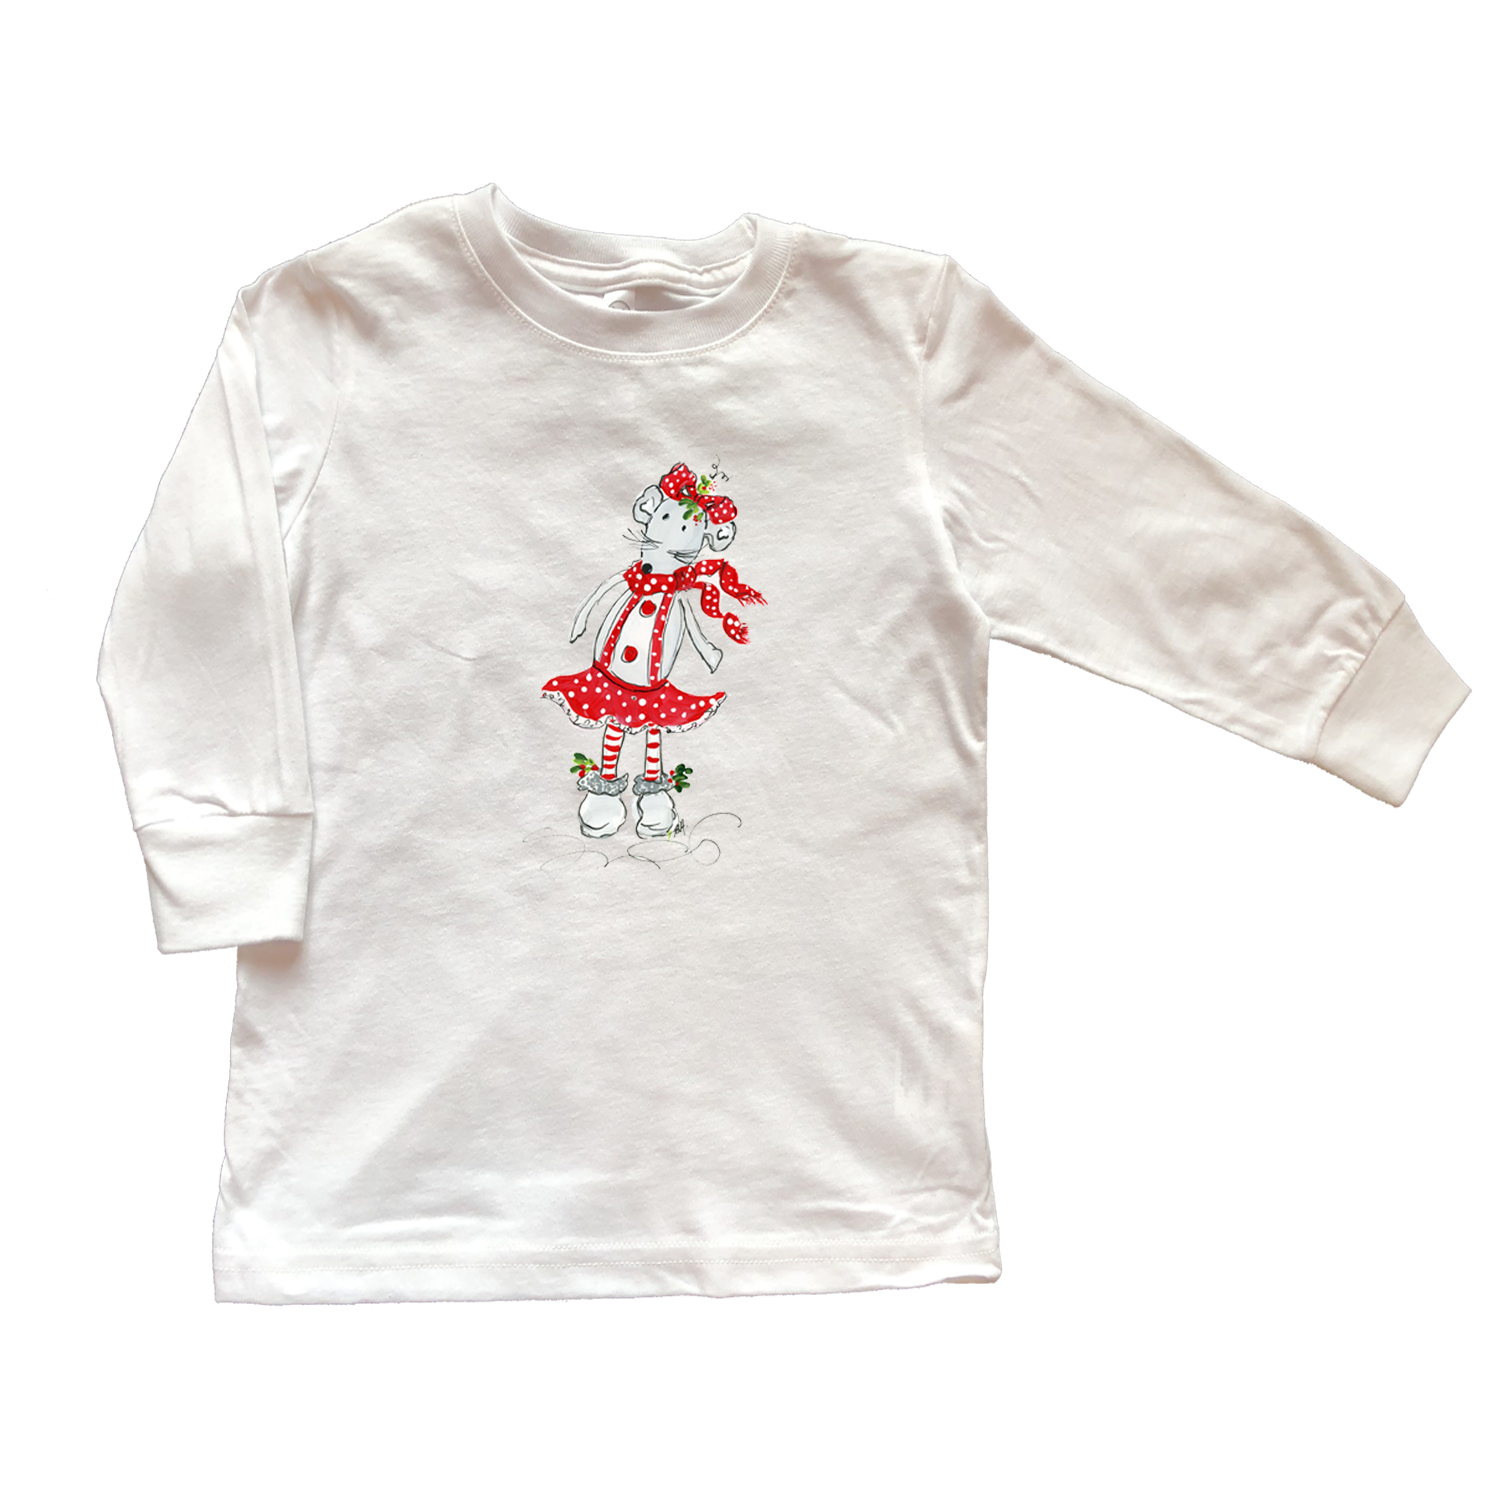 Girls Tee Shirt Long Sleeve TS1011